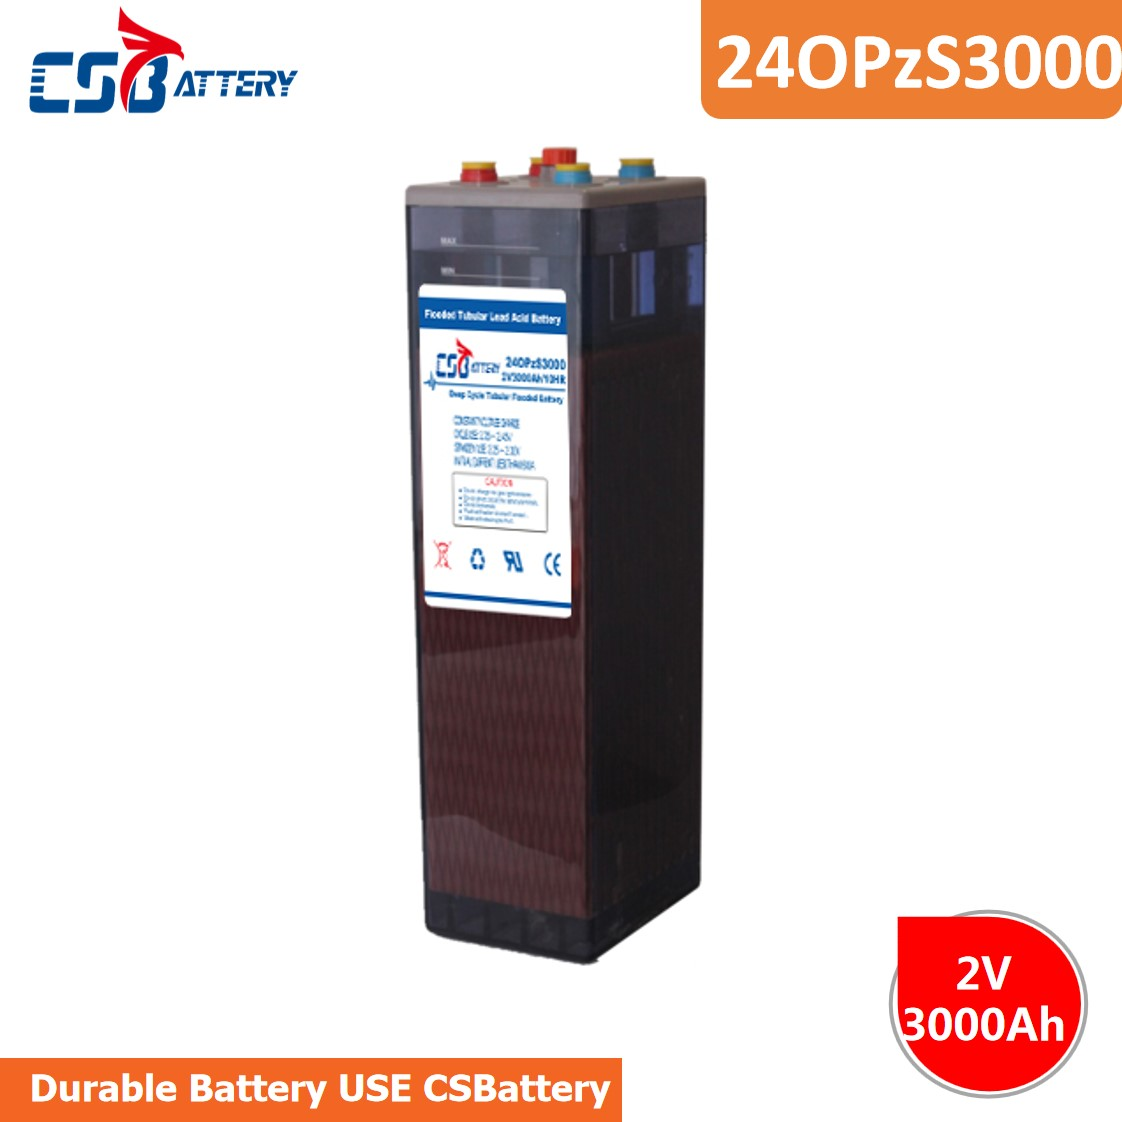 Csbattery 2V3000ah Flooded-Tubular Opzs Battery for Sufficient-Capacity/PV-Solar-Inverter/Solar-Accumulator/Backup-Power